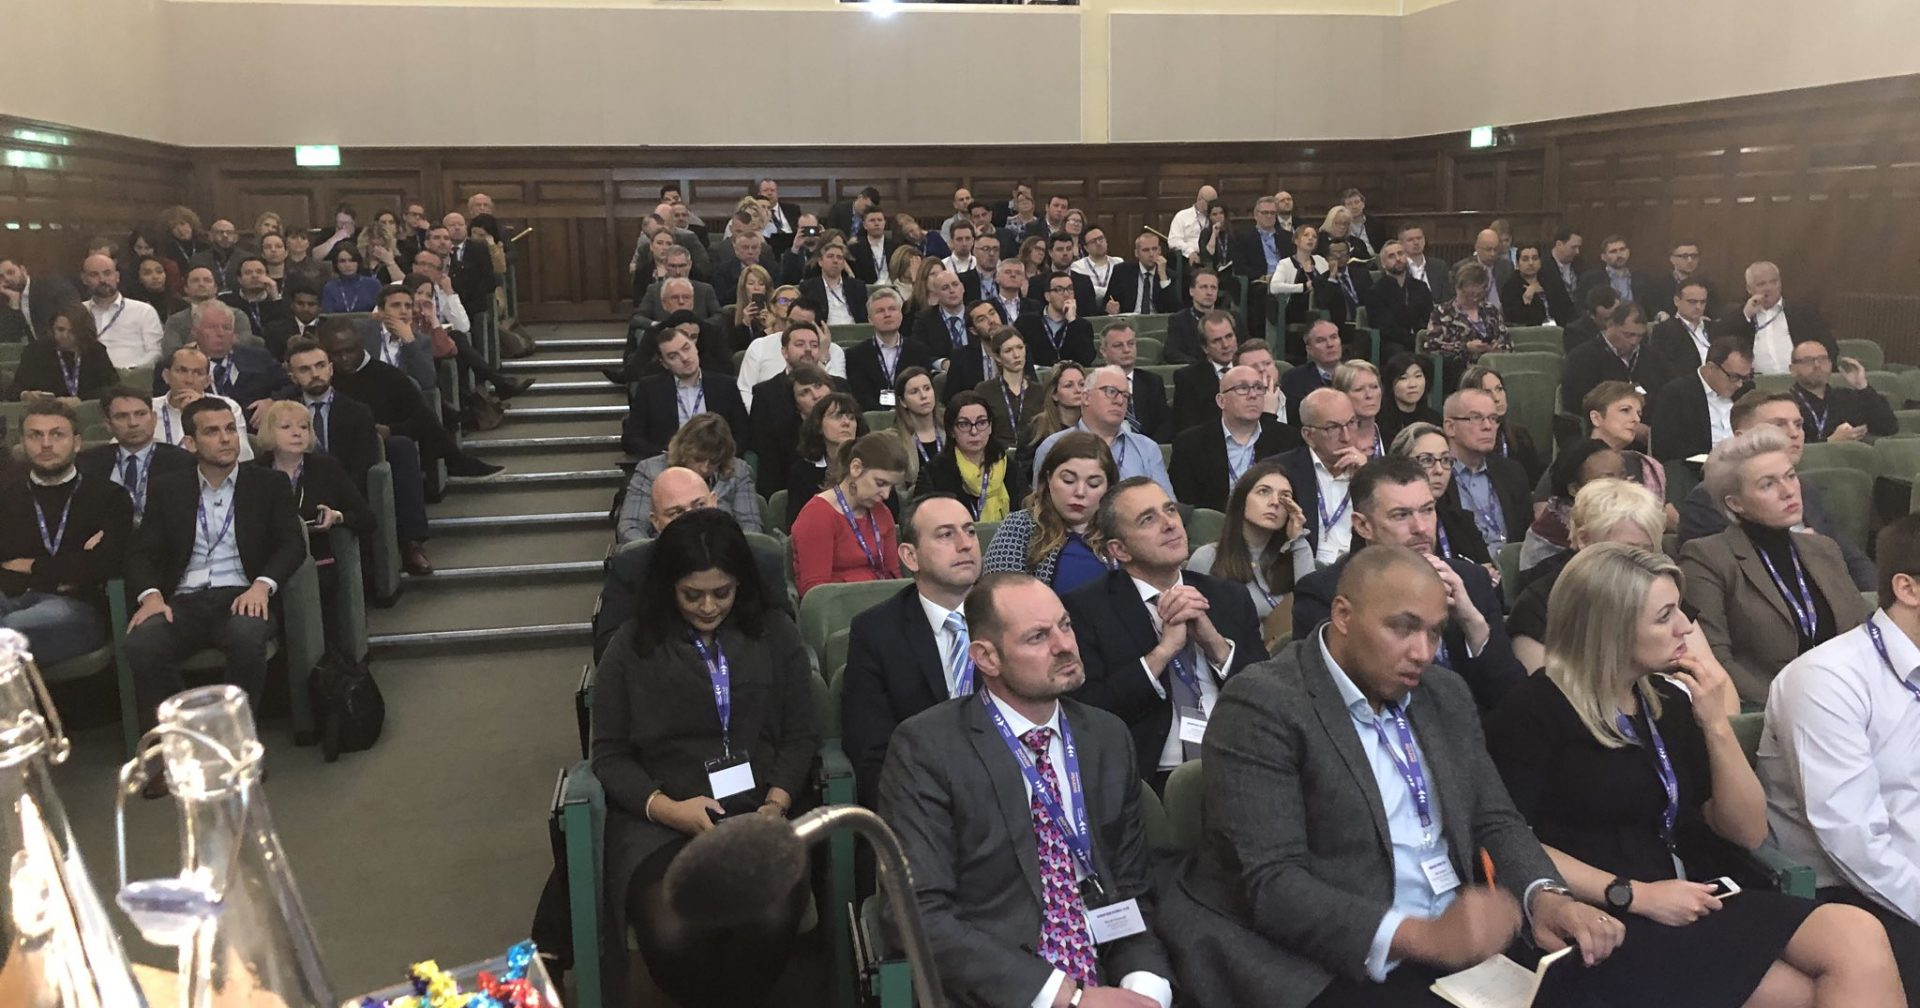 Workplace Futures - The FM Conference - 22nd February 2022